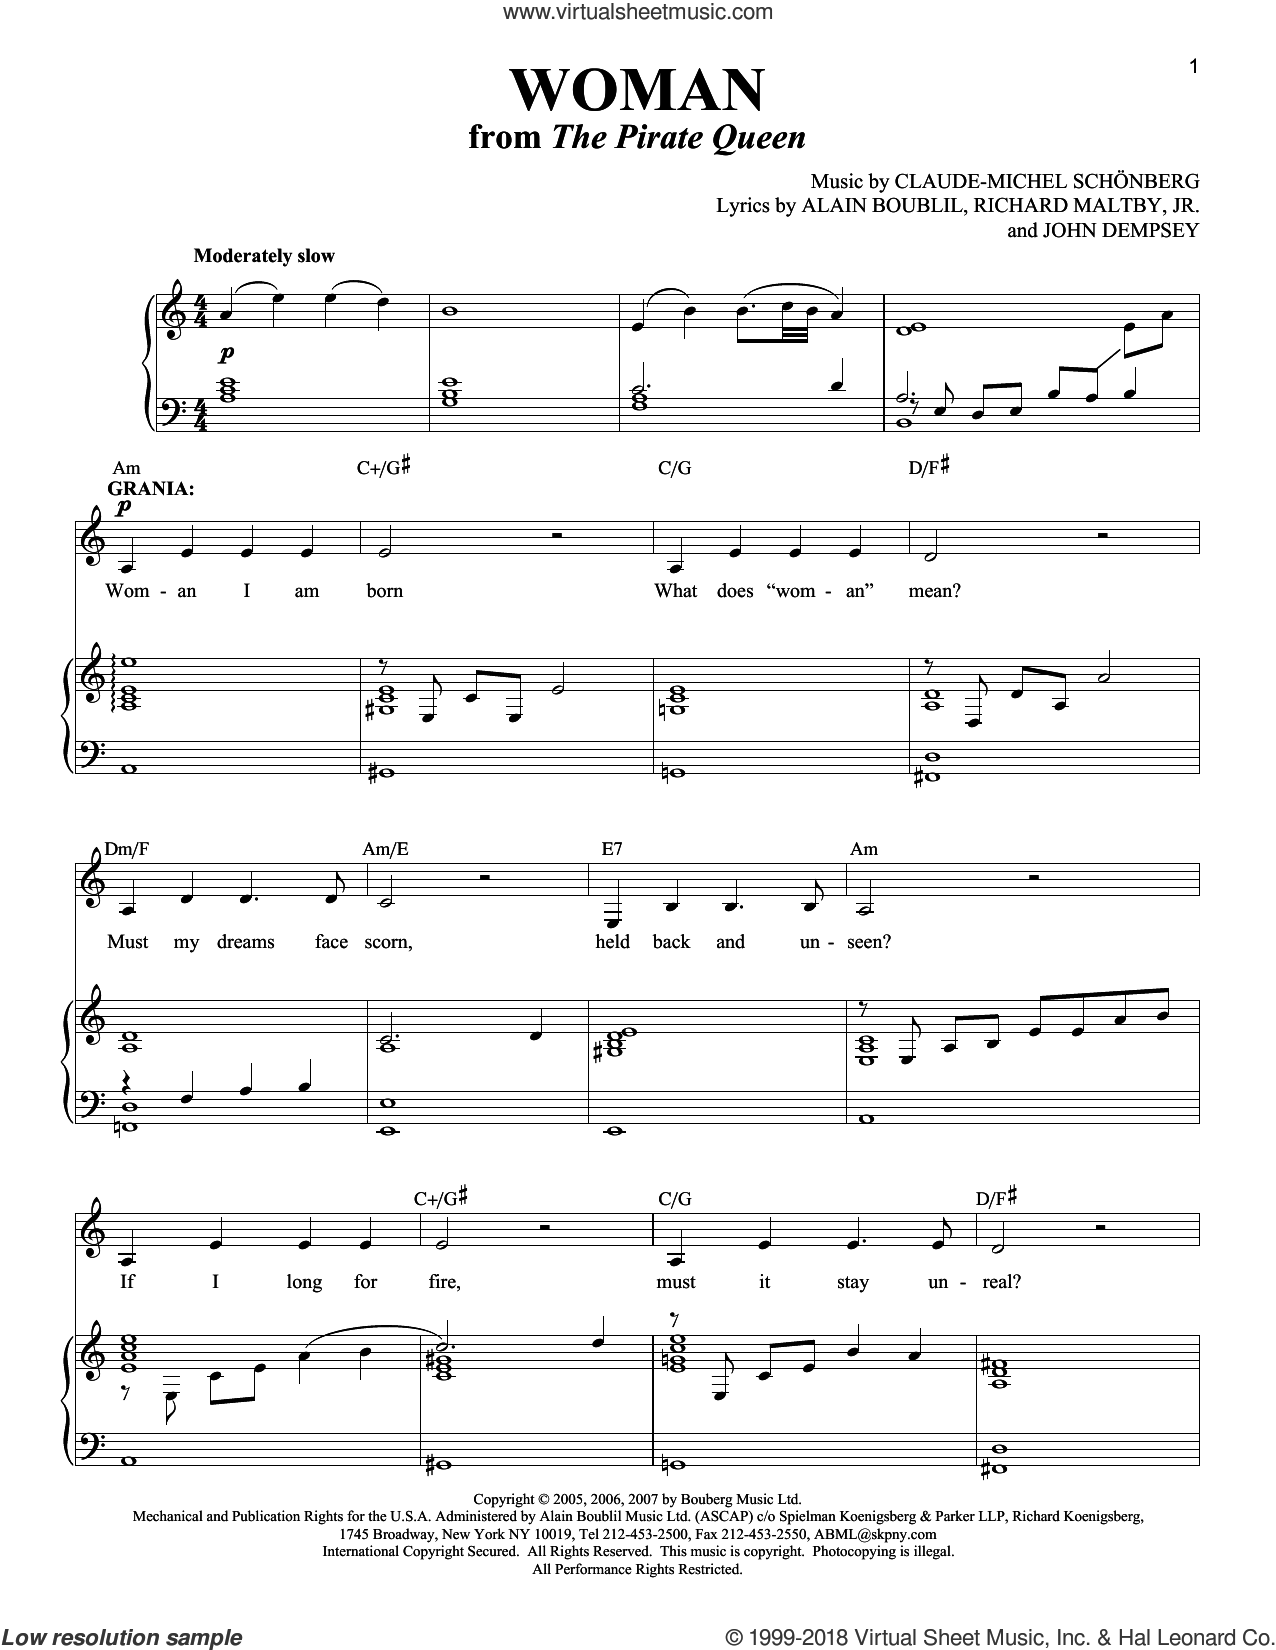 Woman sheet music for voice and piano by Alain Boublil, Claude-Michel Schonberg, John Dempsey and Richard Maltby, Jr., intermediate skill level